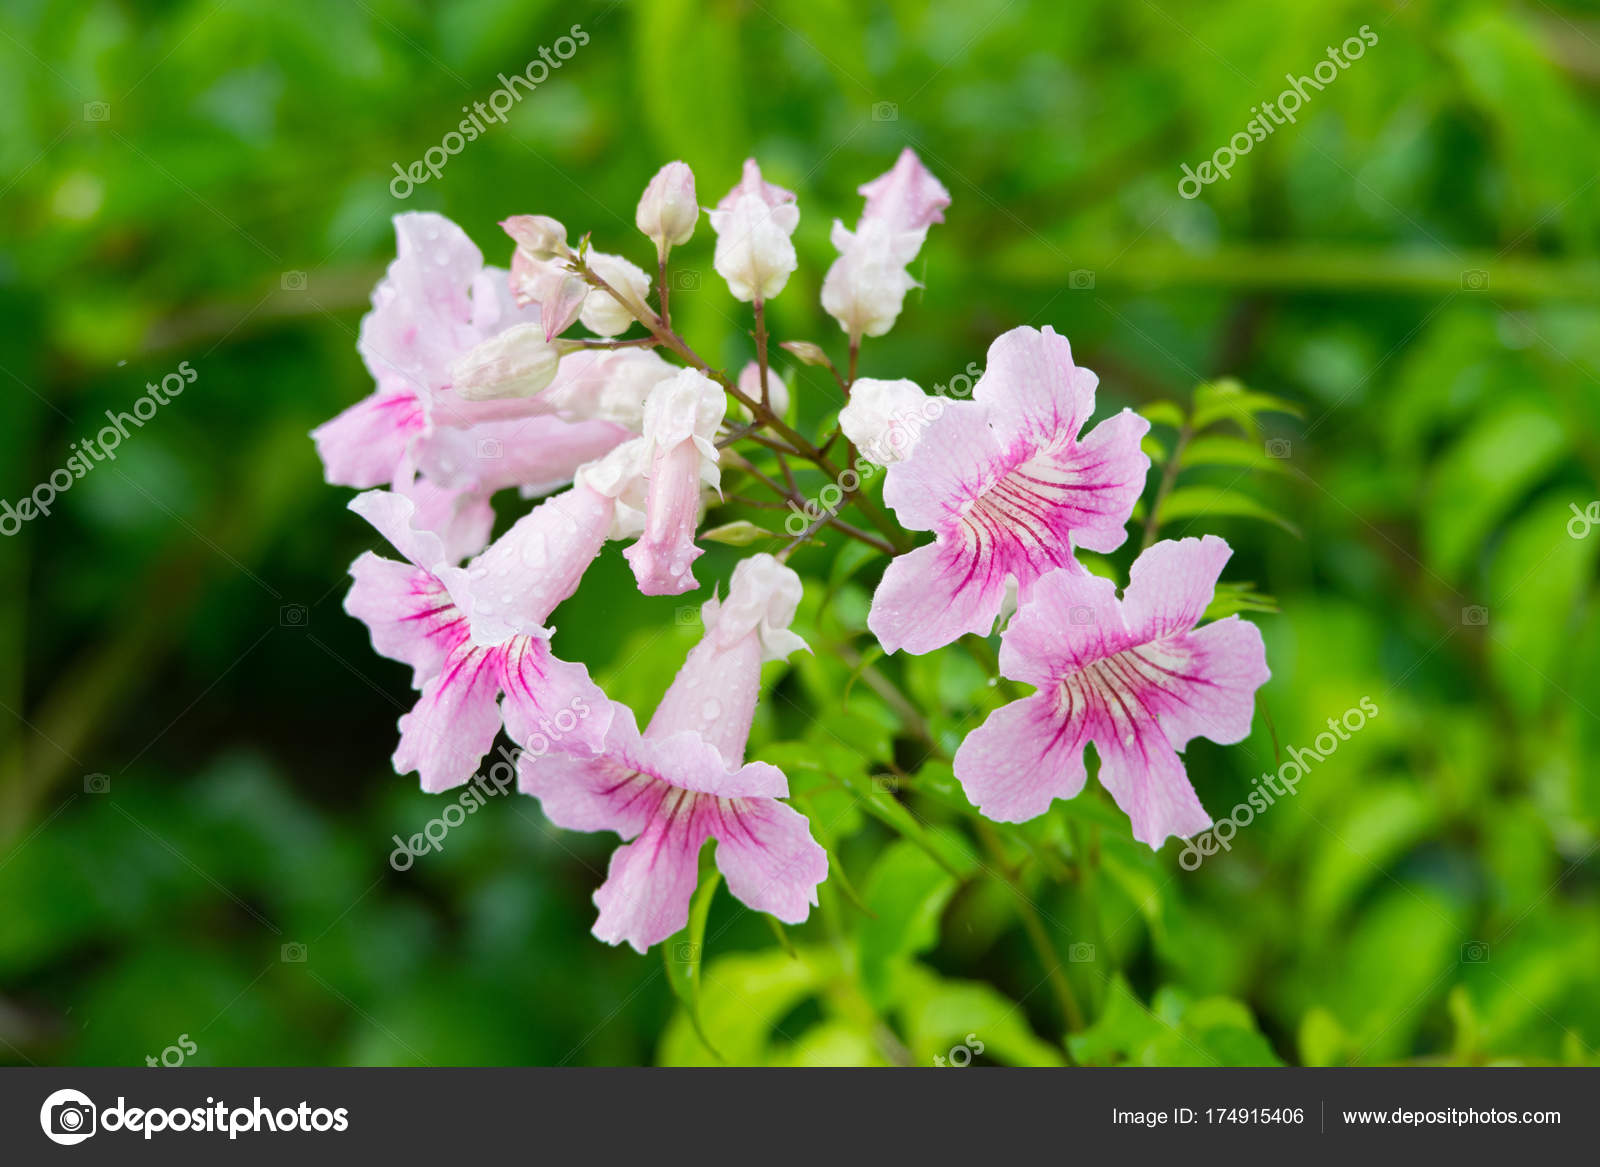 Pink trumpet vine podranea ricasoliana flower spain stock photo pink trumpet vine podranea ricasoliana flower spain stock photo mightylinksfo